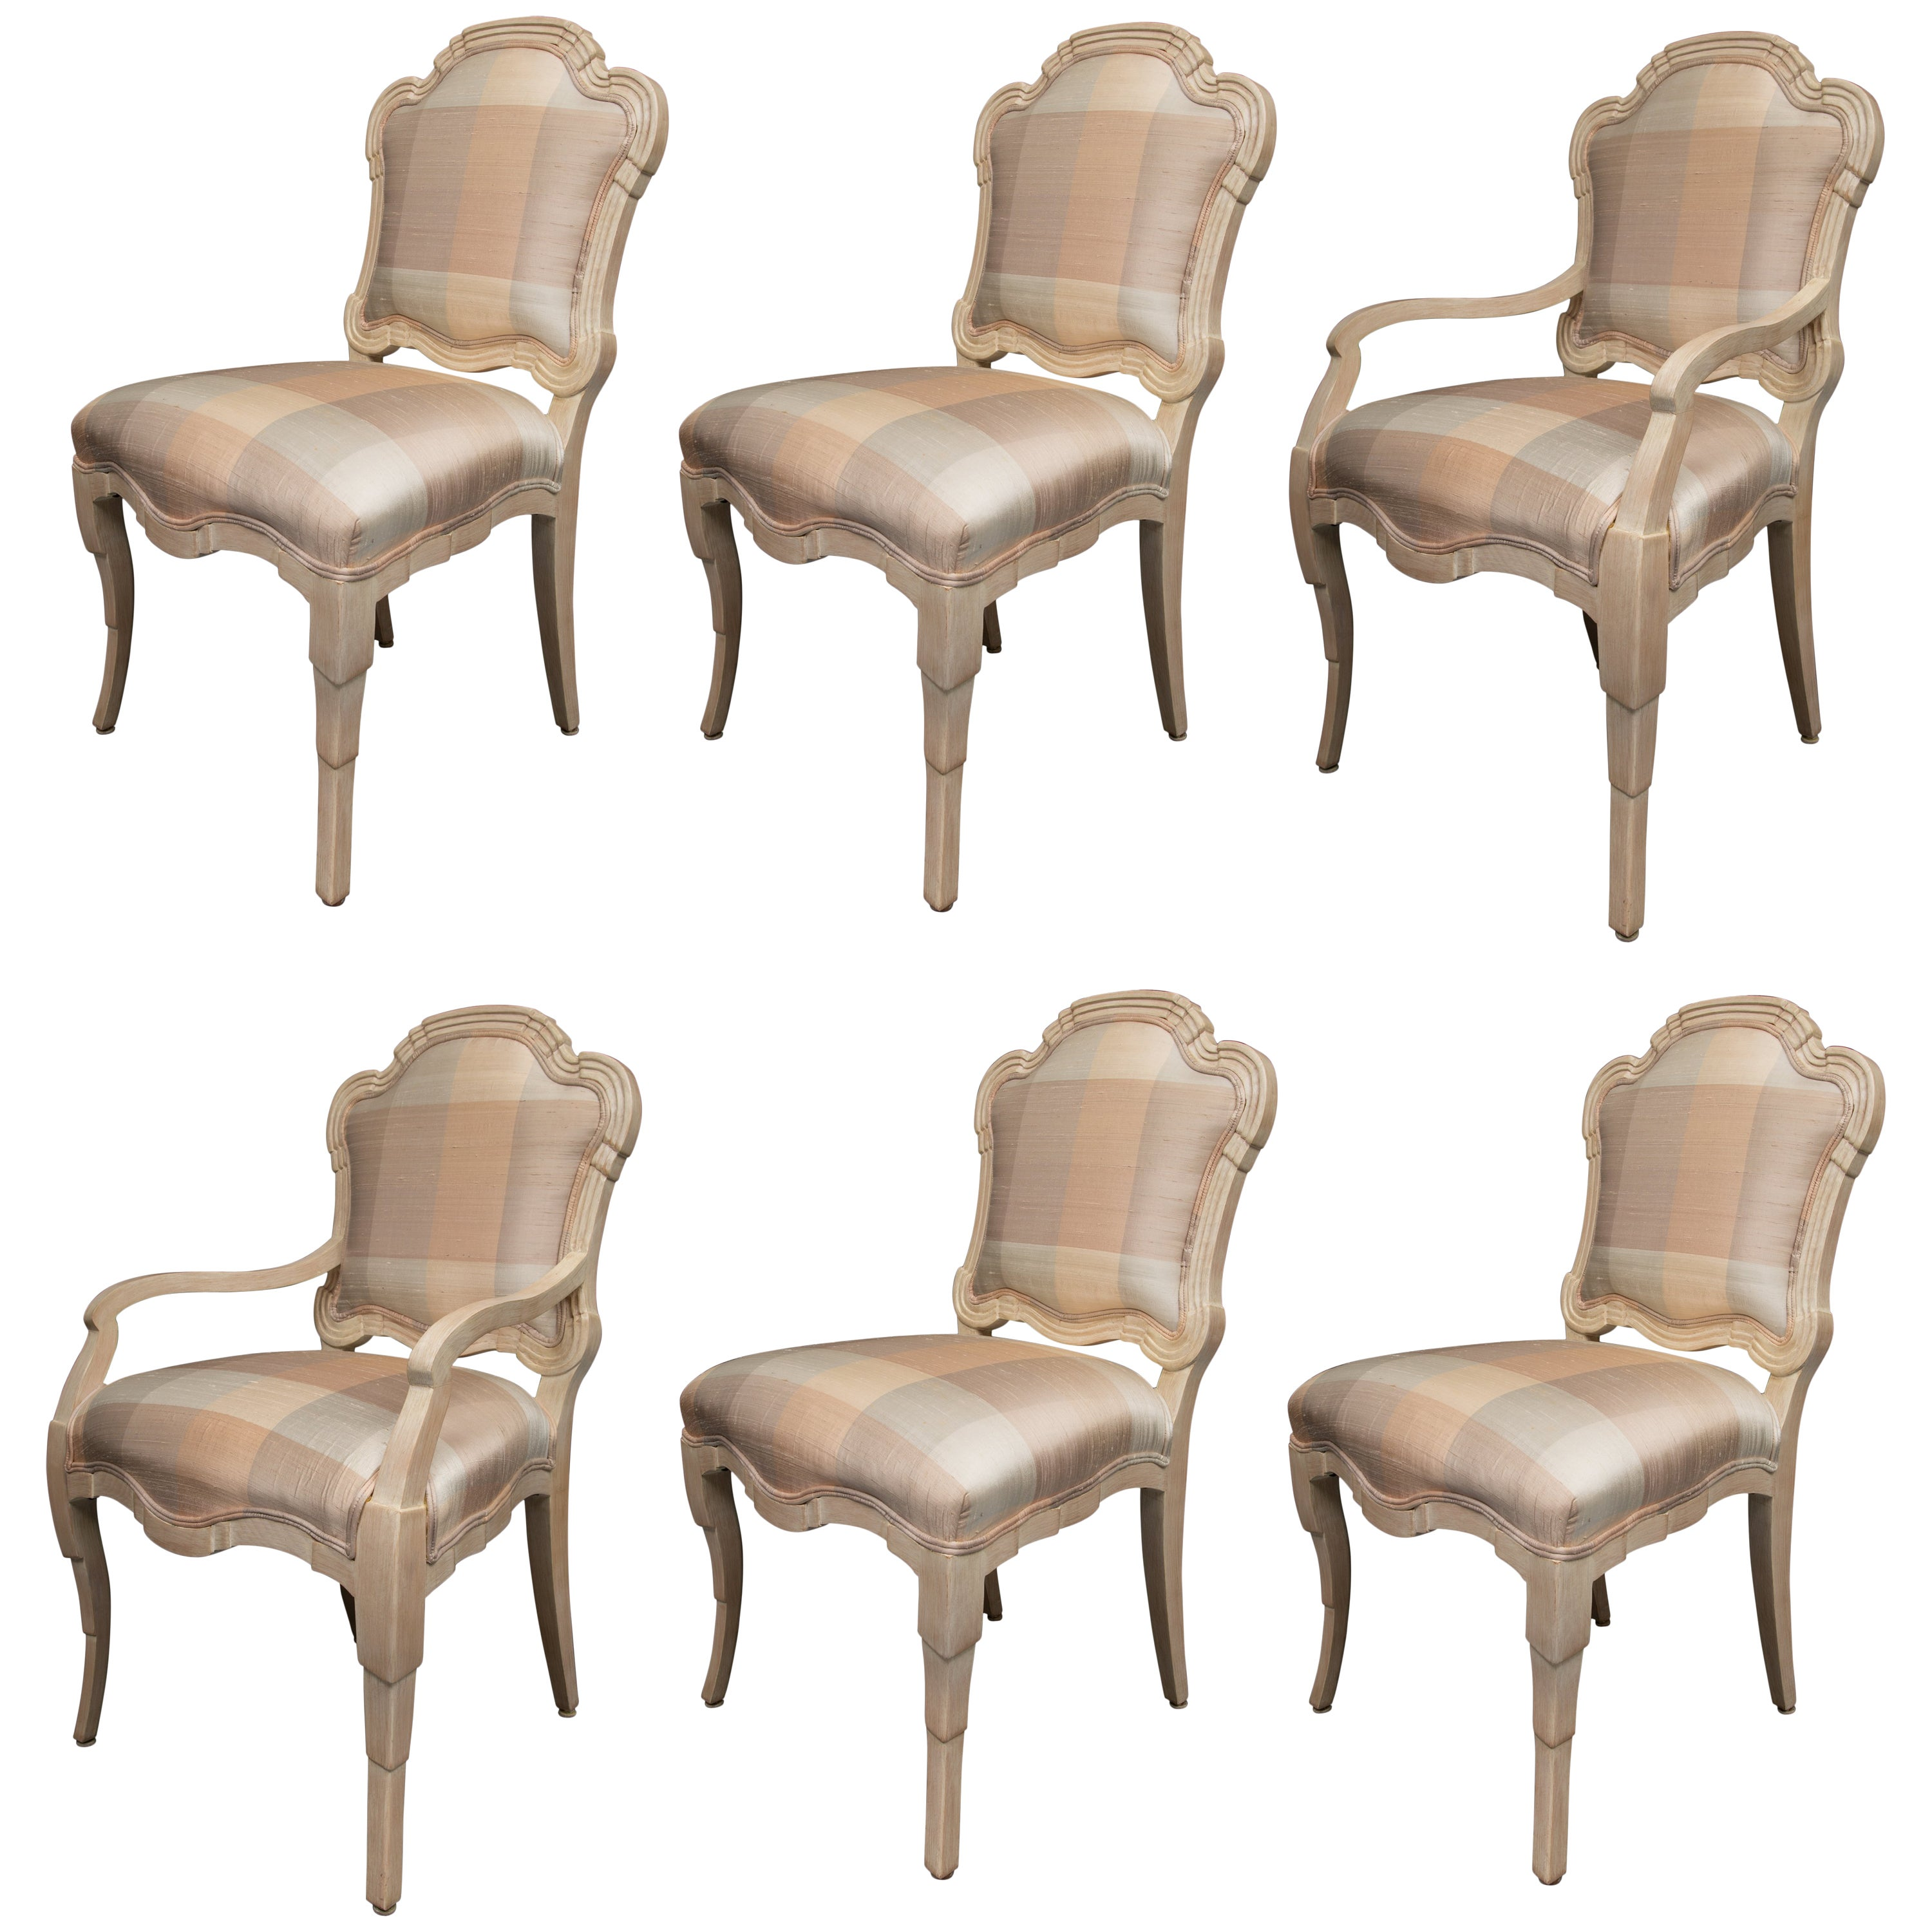 cream upholstered dining chairs revolving chair on gem set of six painted stylized louis xvi style for sale at 1stdibs